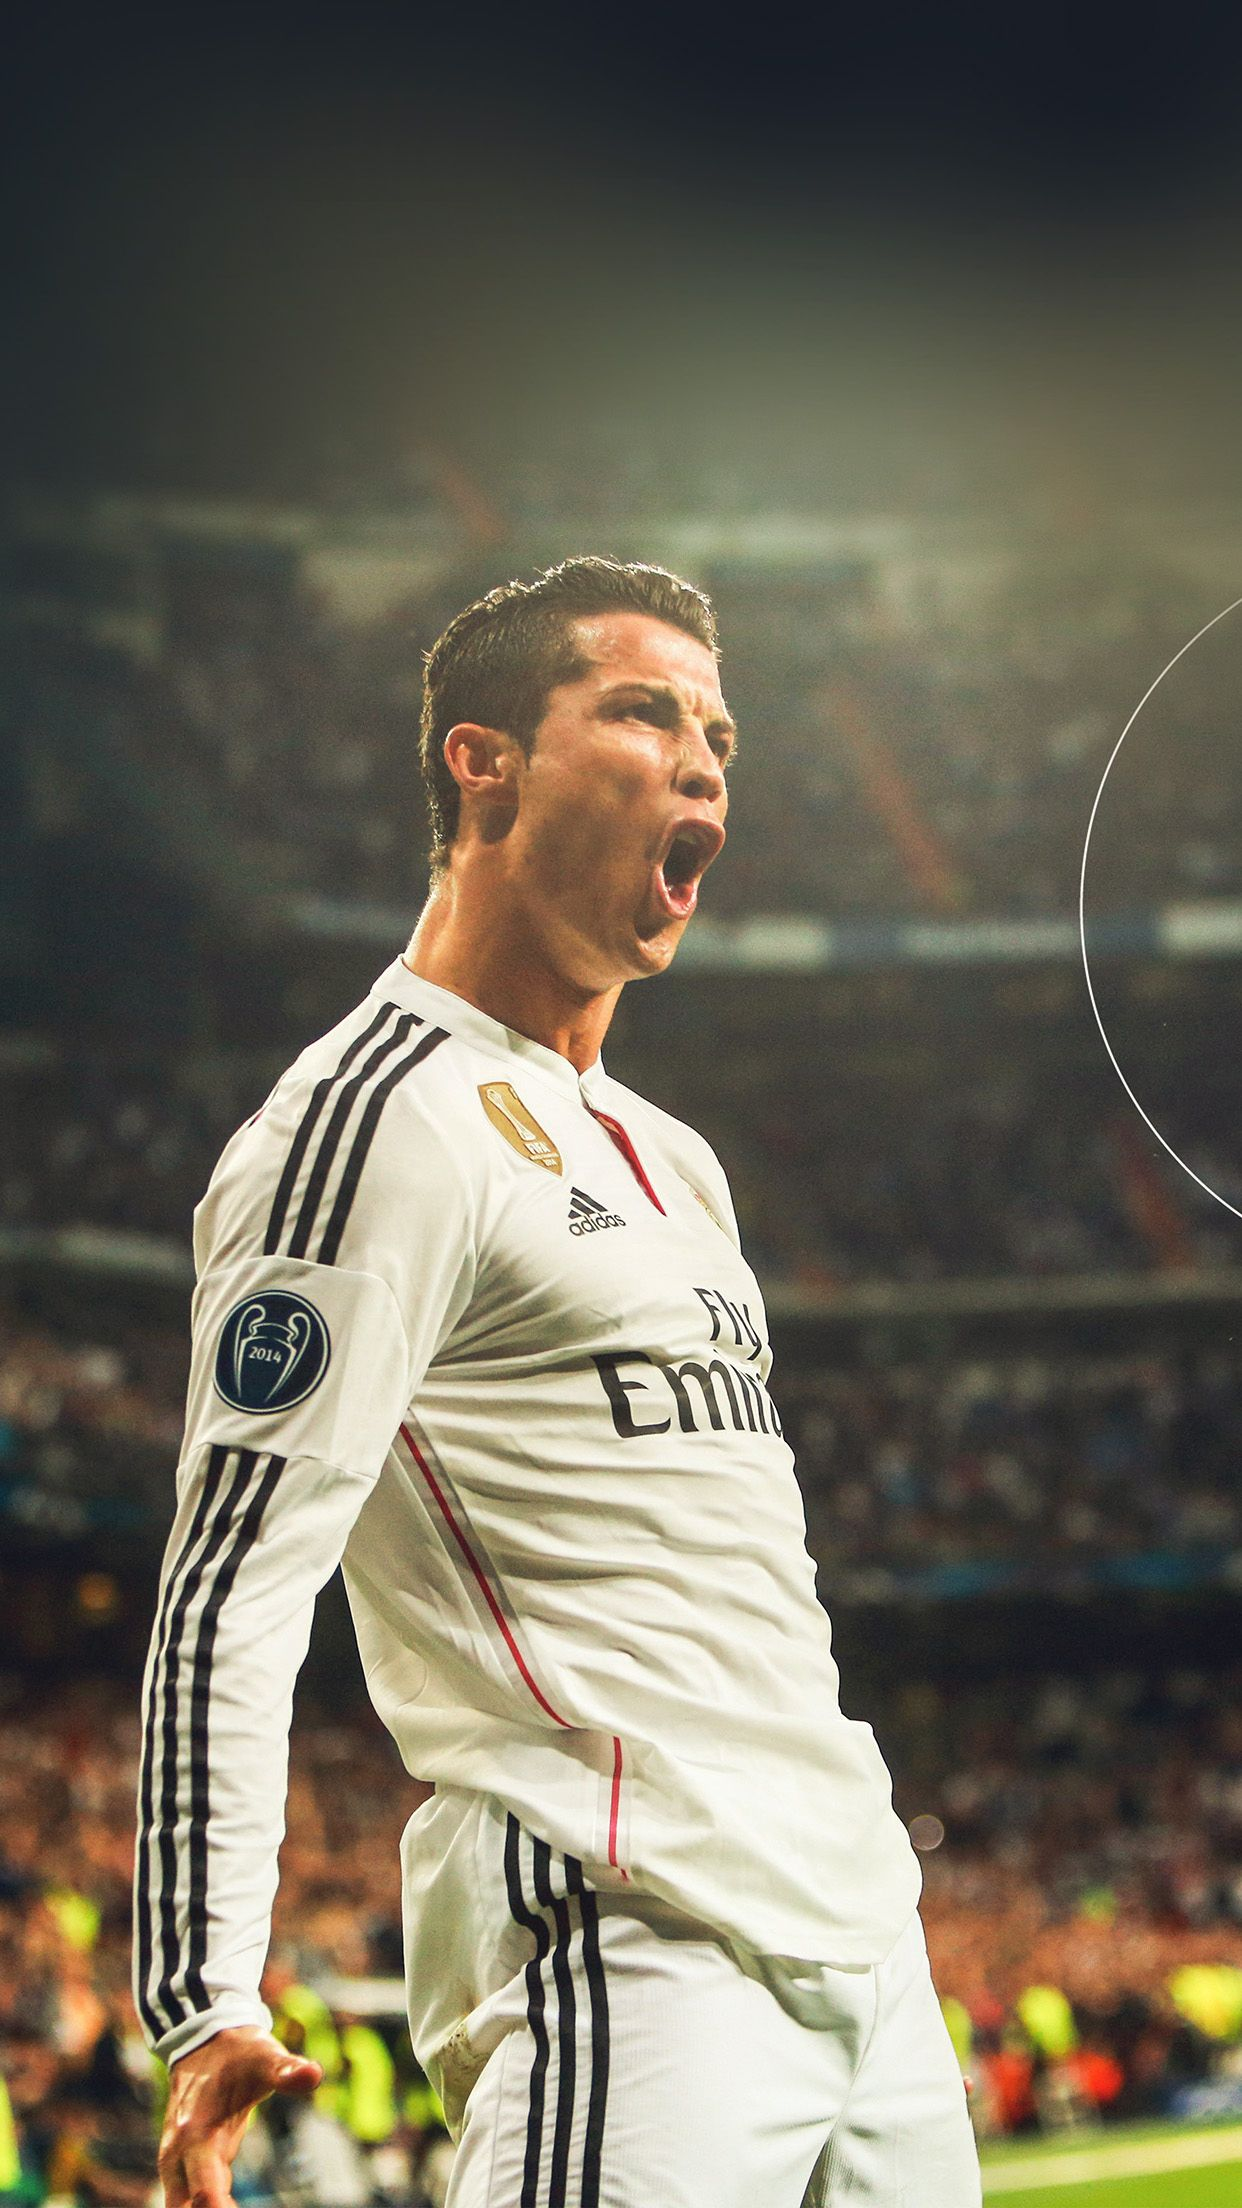 """Cristiano Ronaldo Wallpaper For Your Mobile """"¹ Download For Free This Wallpaper Https Www Wal Real Madrid Wallpapers Madrid Wallpaper Ronaldo Real Madrid"""